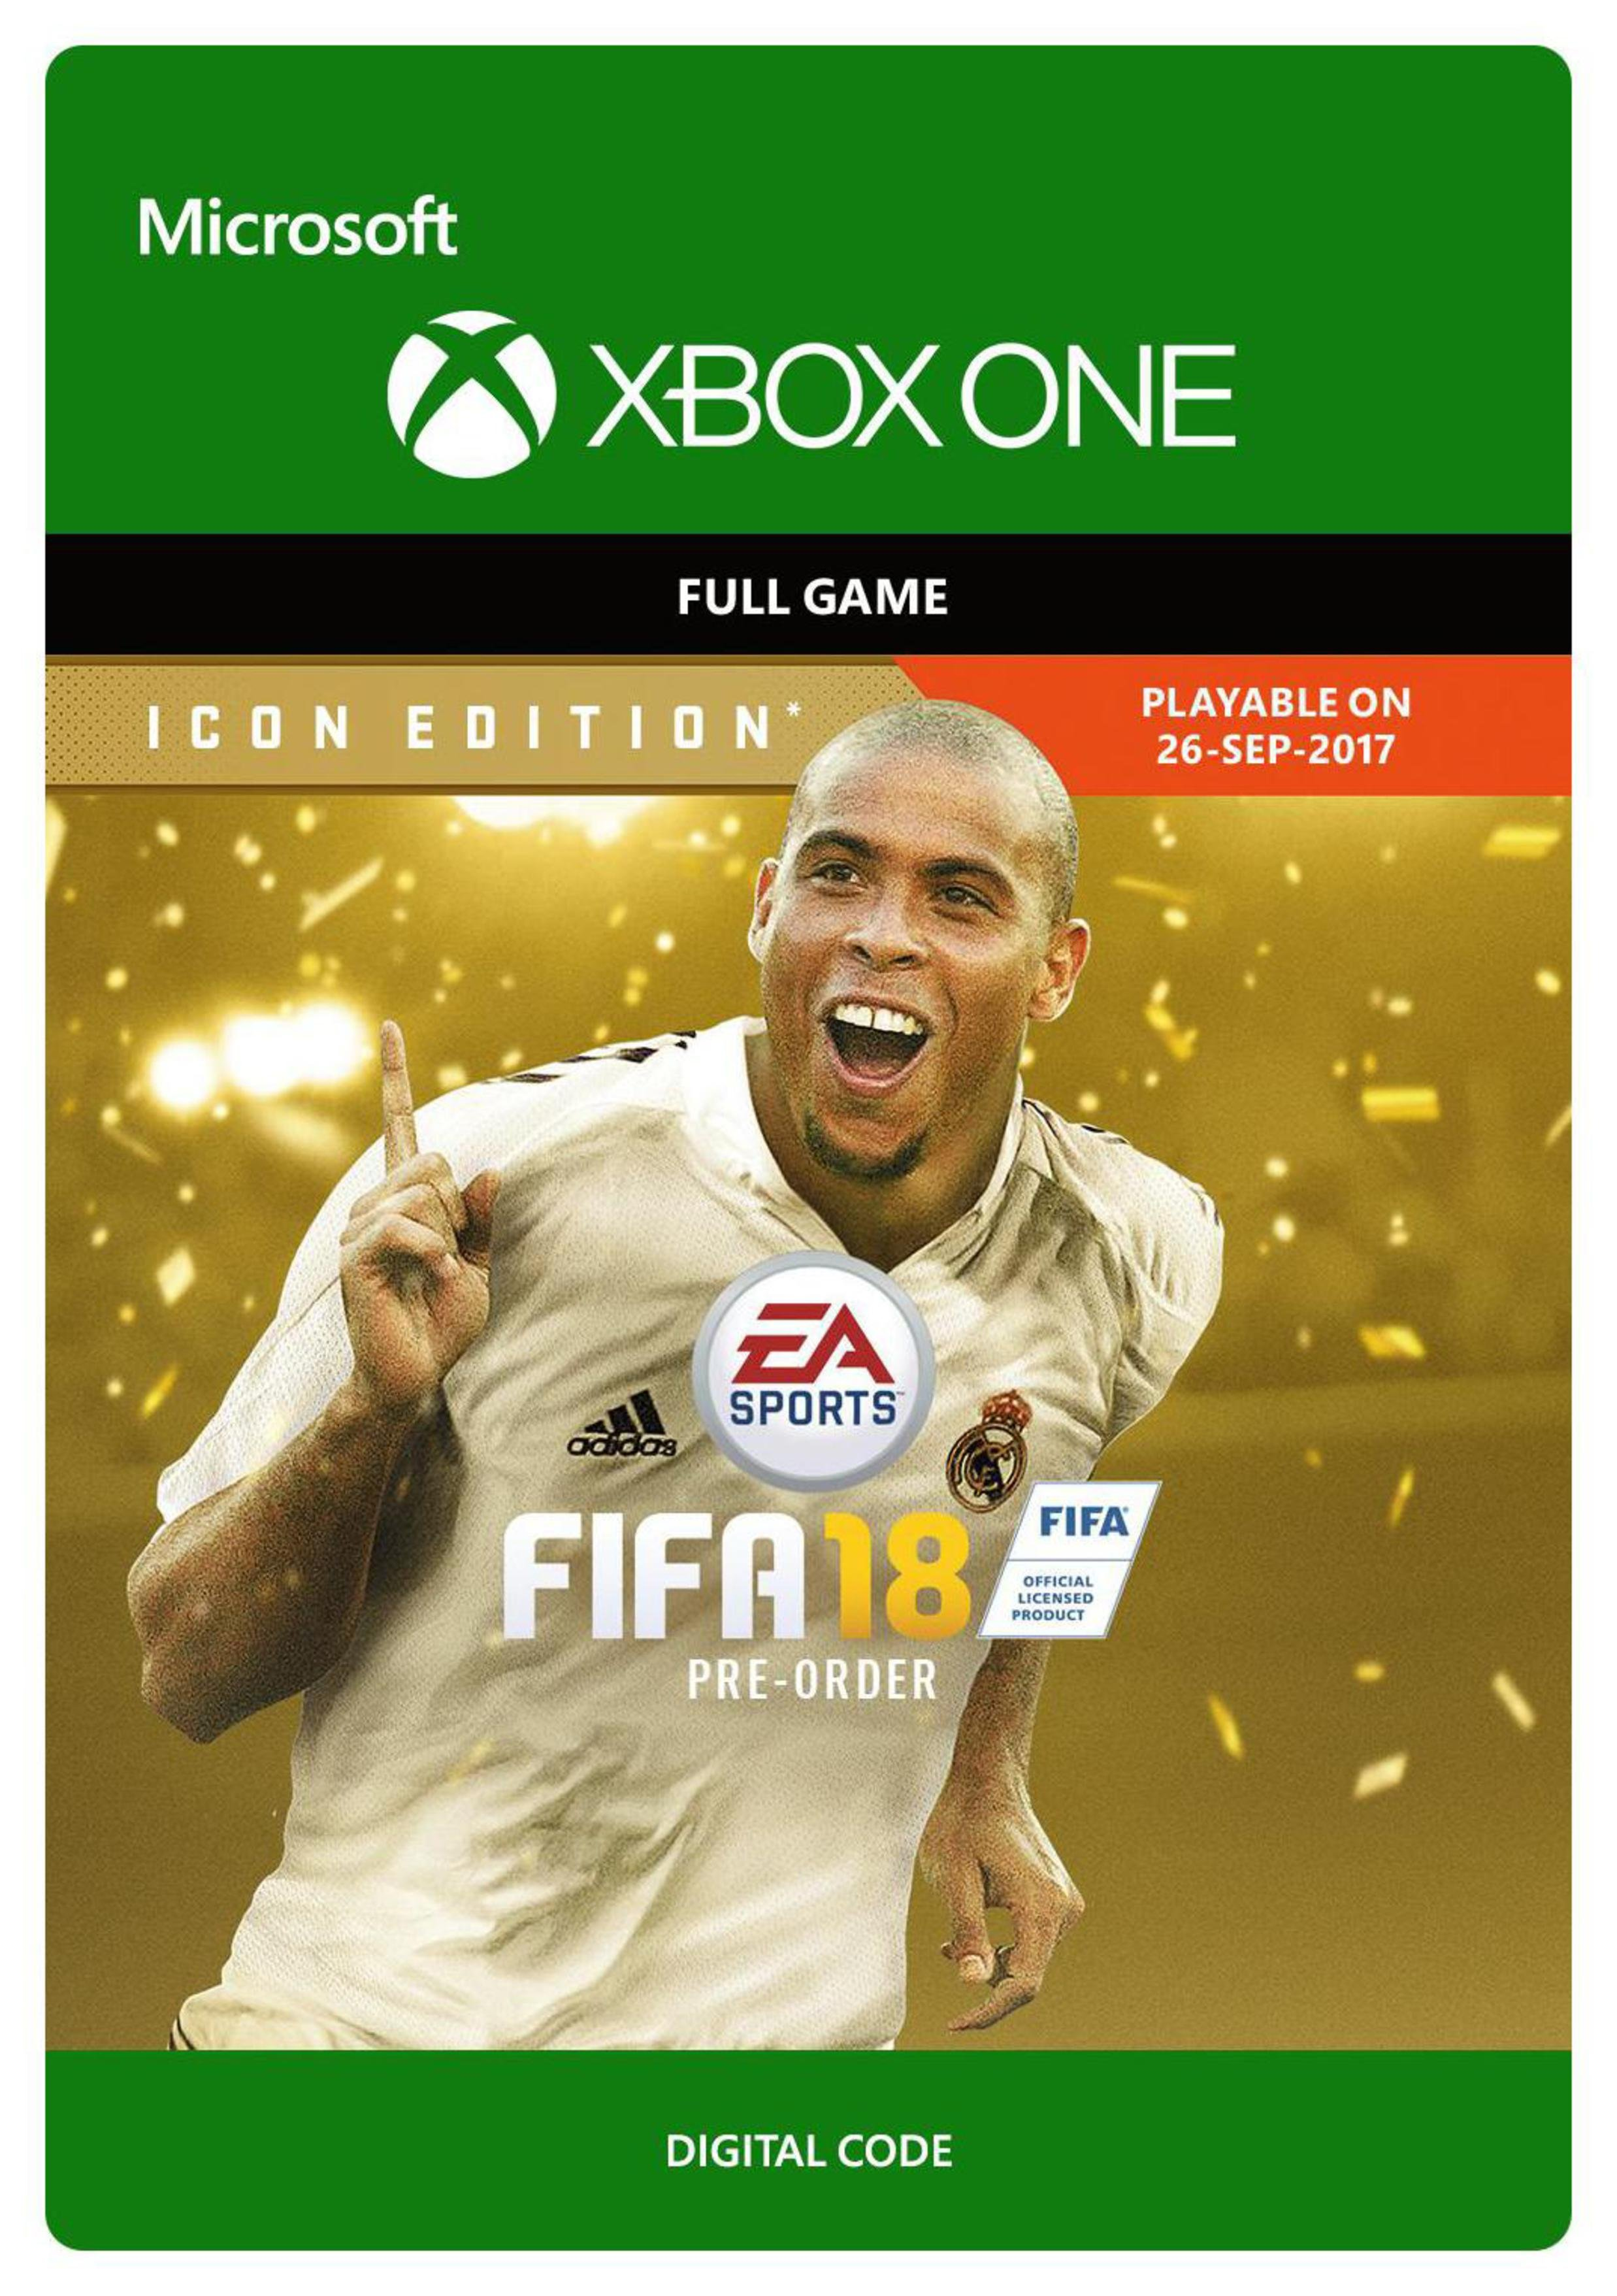 fifa-18-xbox-one-icon-edition-code-on-receipt